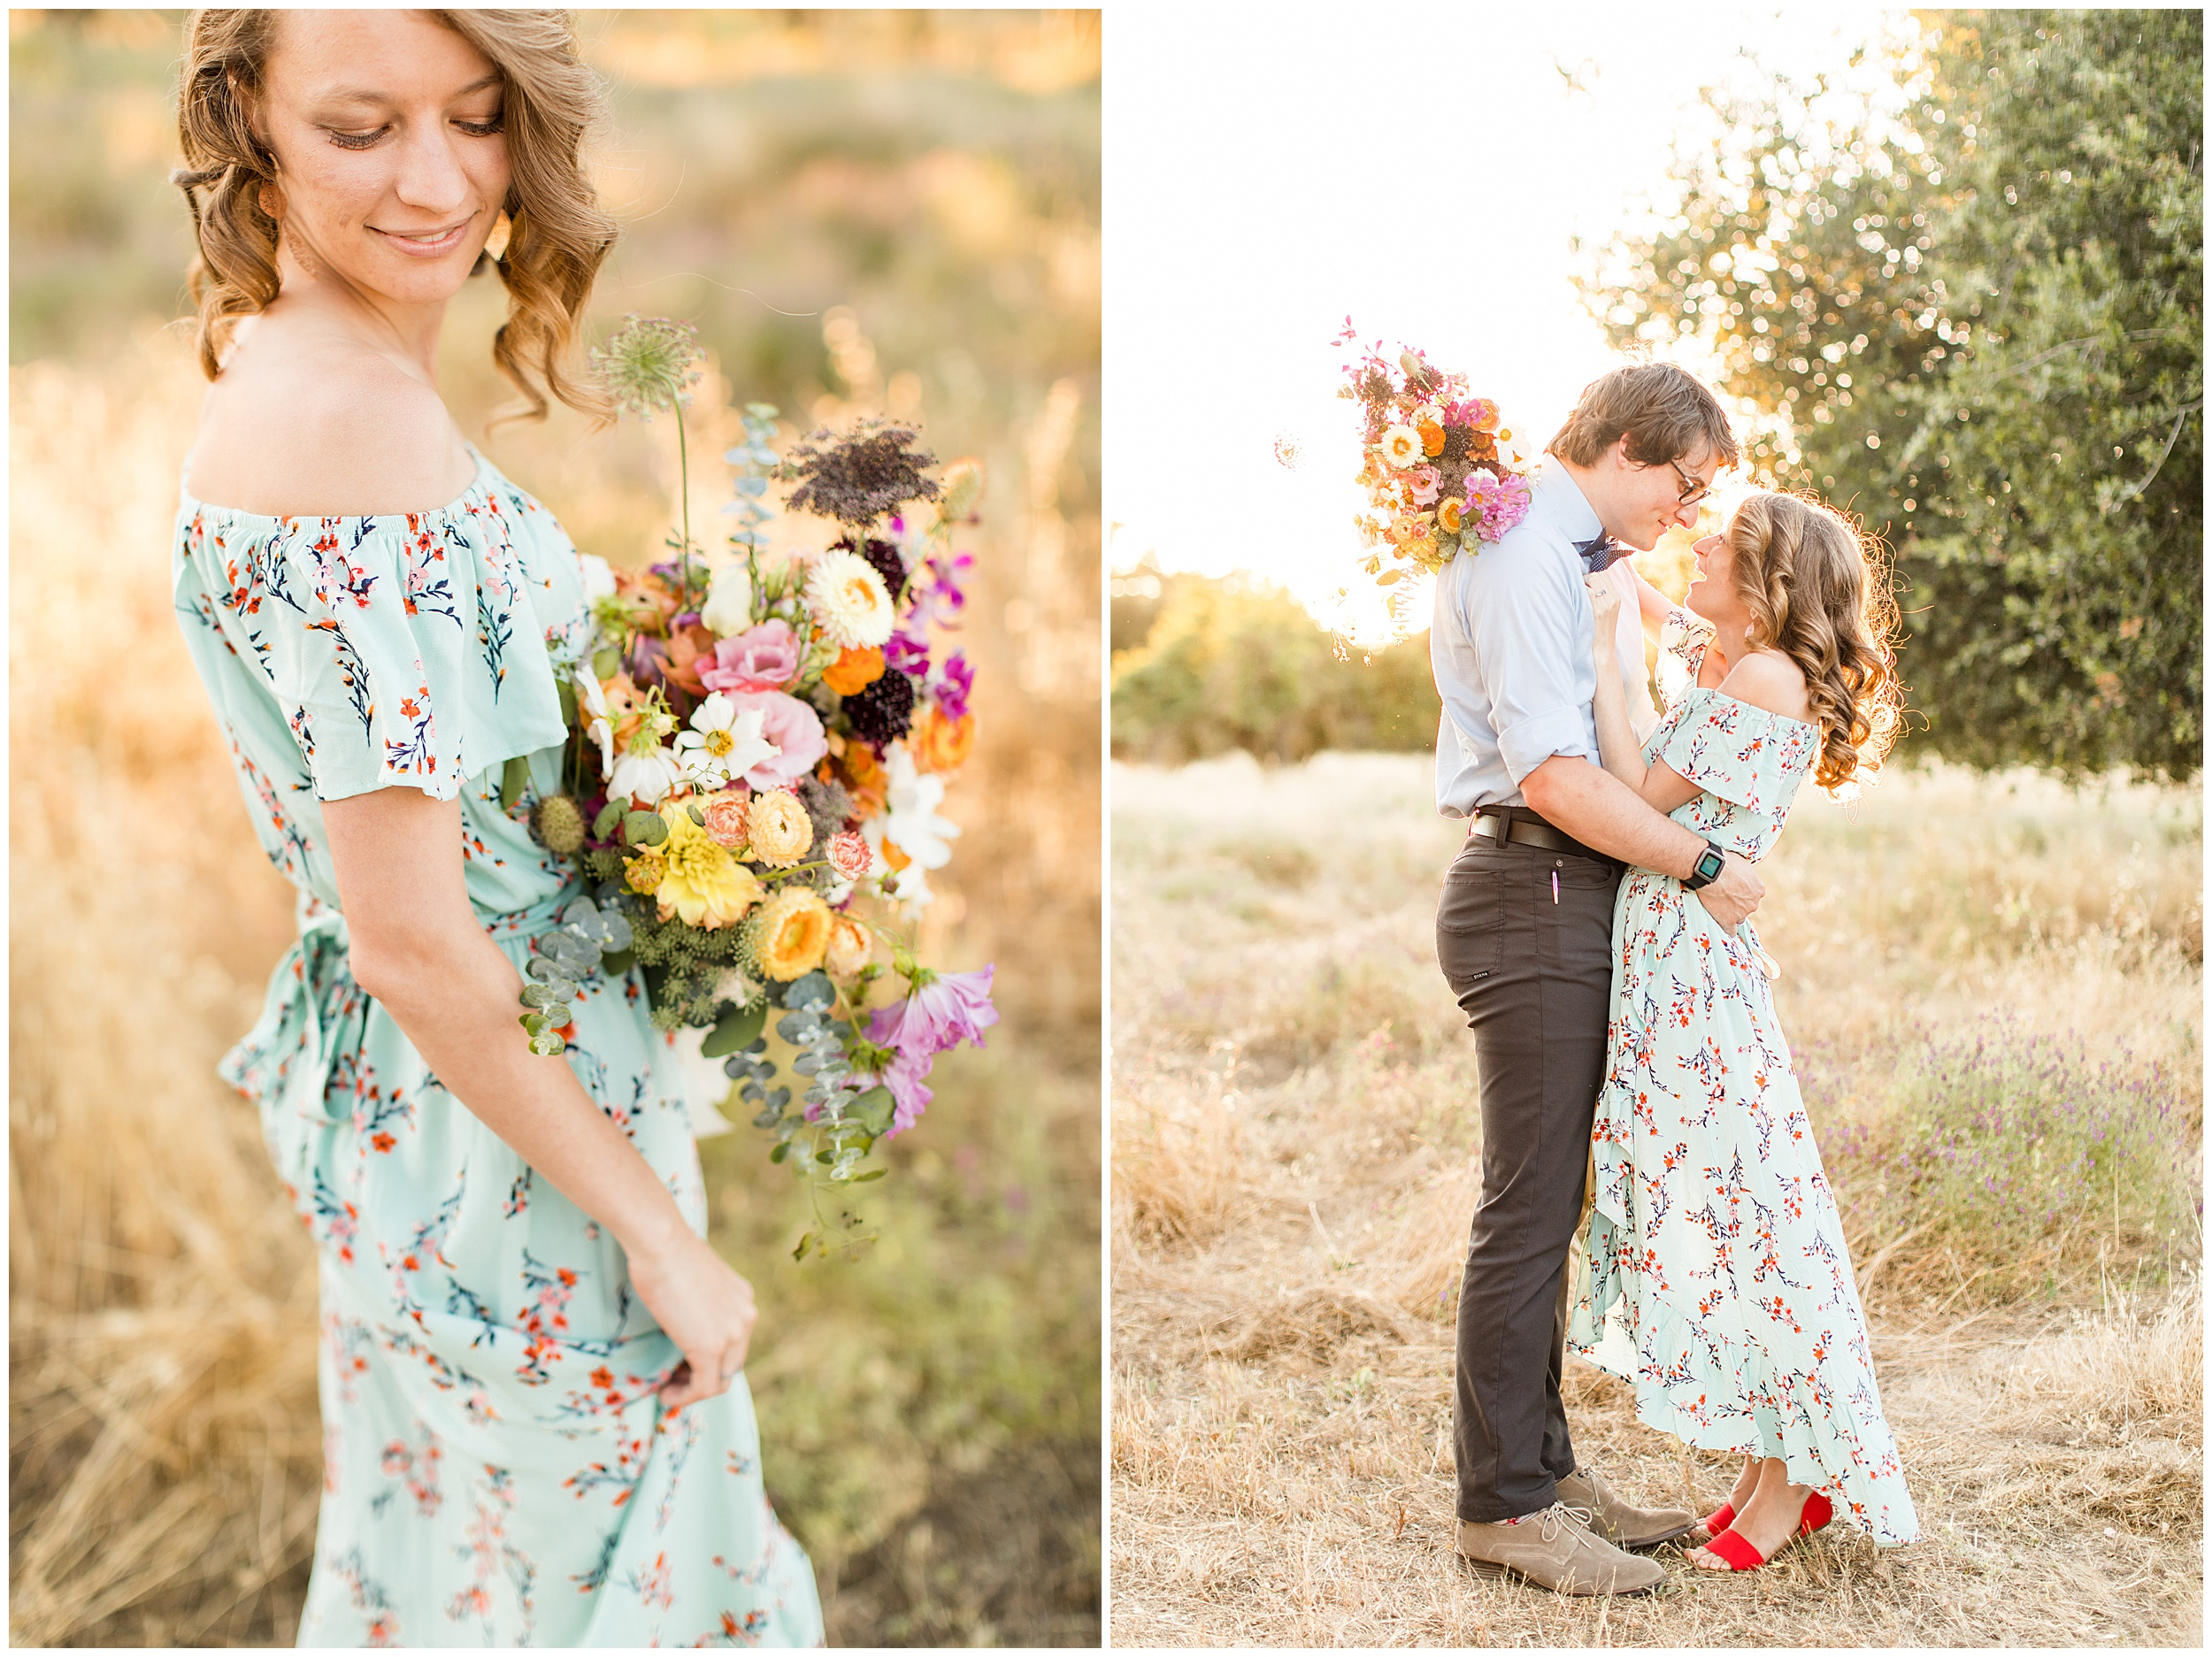 2019 bay area wedding photographer colorful florals flowers styled engagement session Angela Sue Photography_0022.jpg